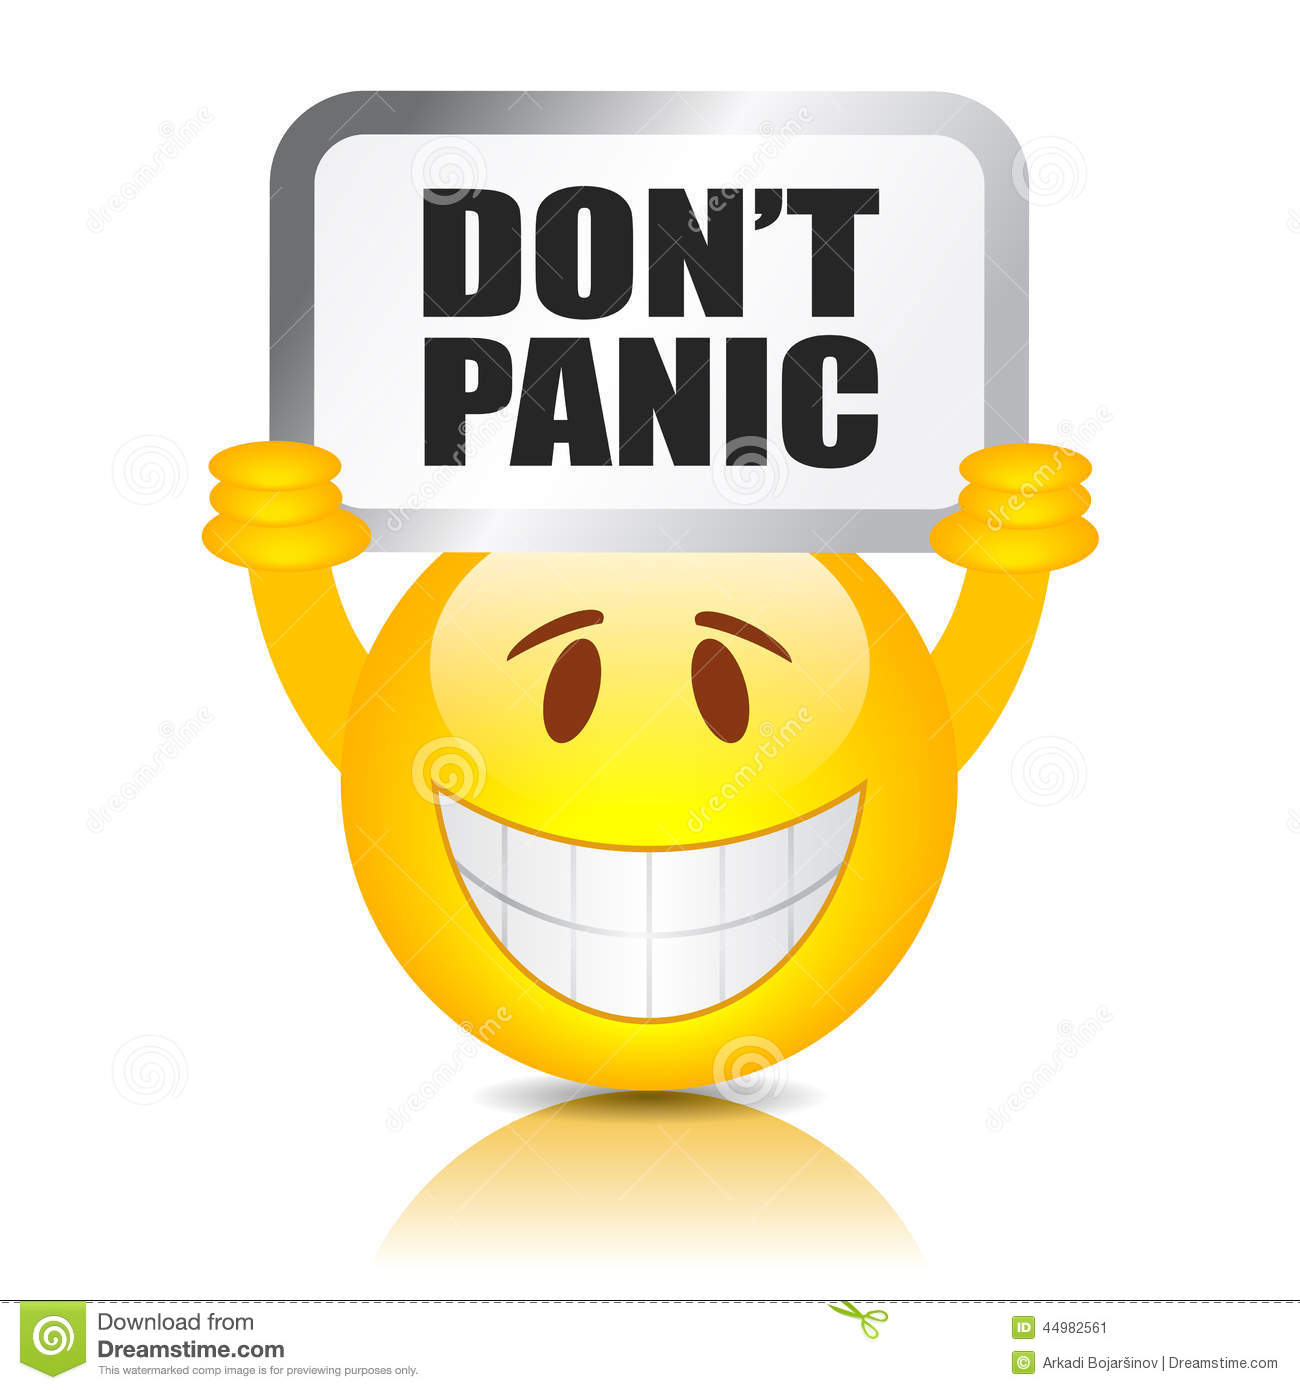 Clipart panic picture library Don\'t panic sign | Clipart Panda - Free Clipart Images picture library